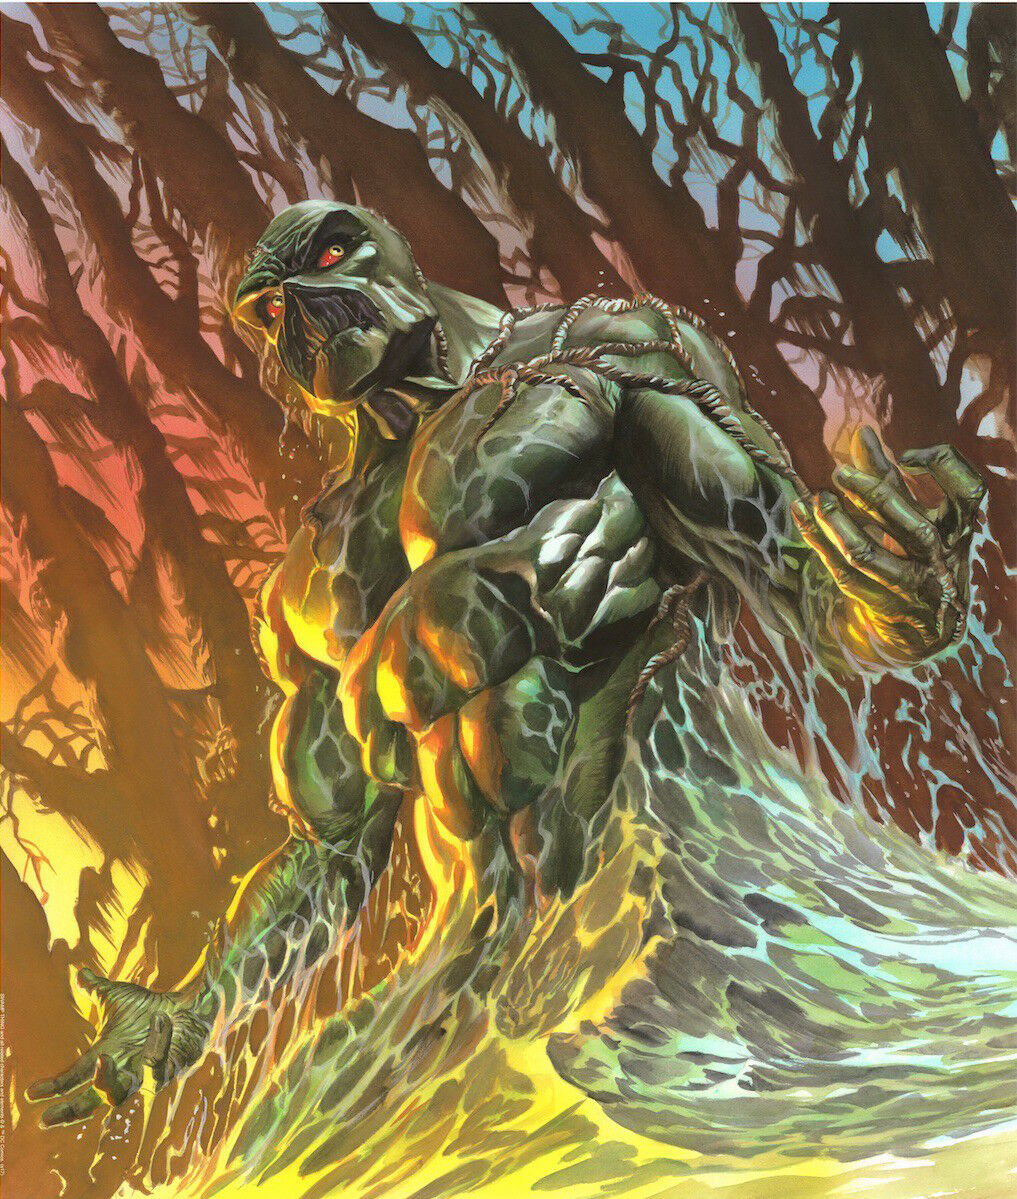 Alex Ross SIGNED Swamp Thing DC Comics LE Lithograph Art Print #21/50 | eBay